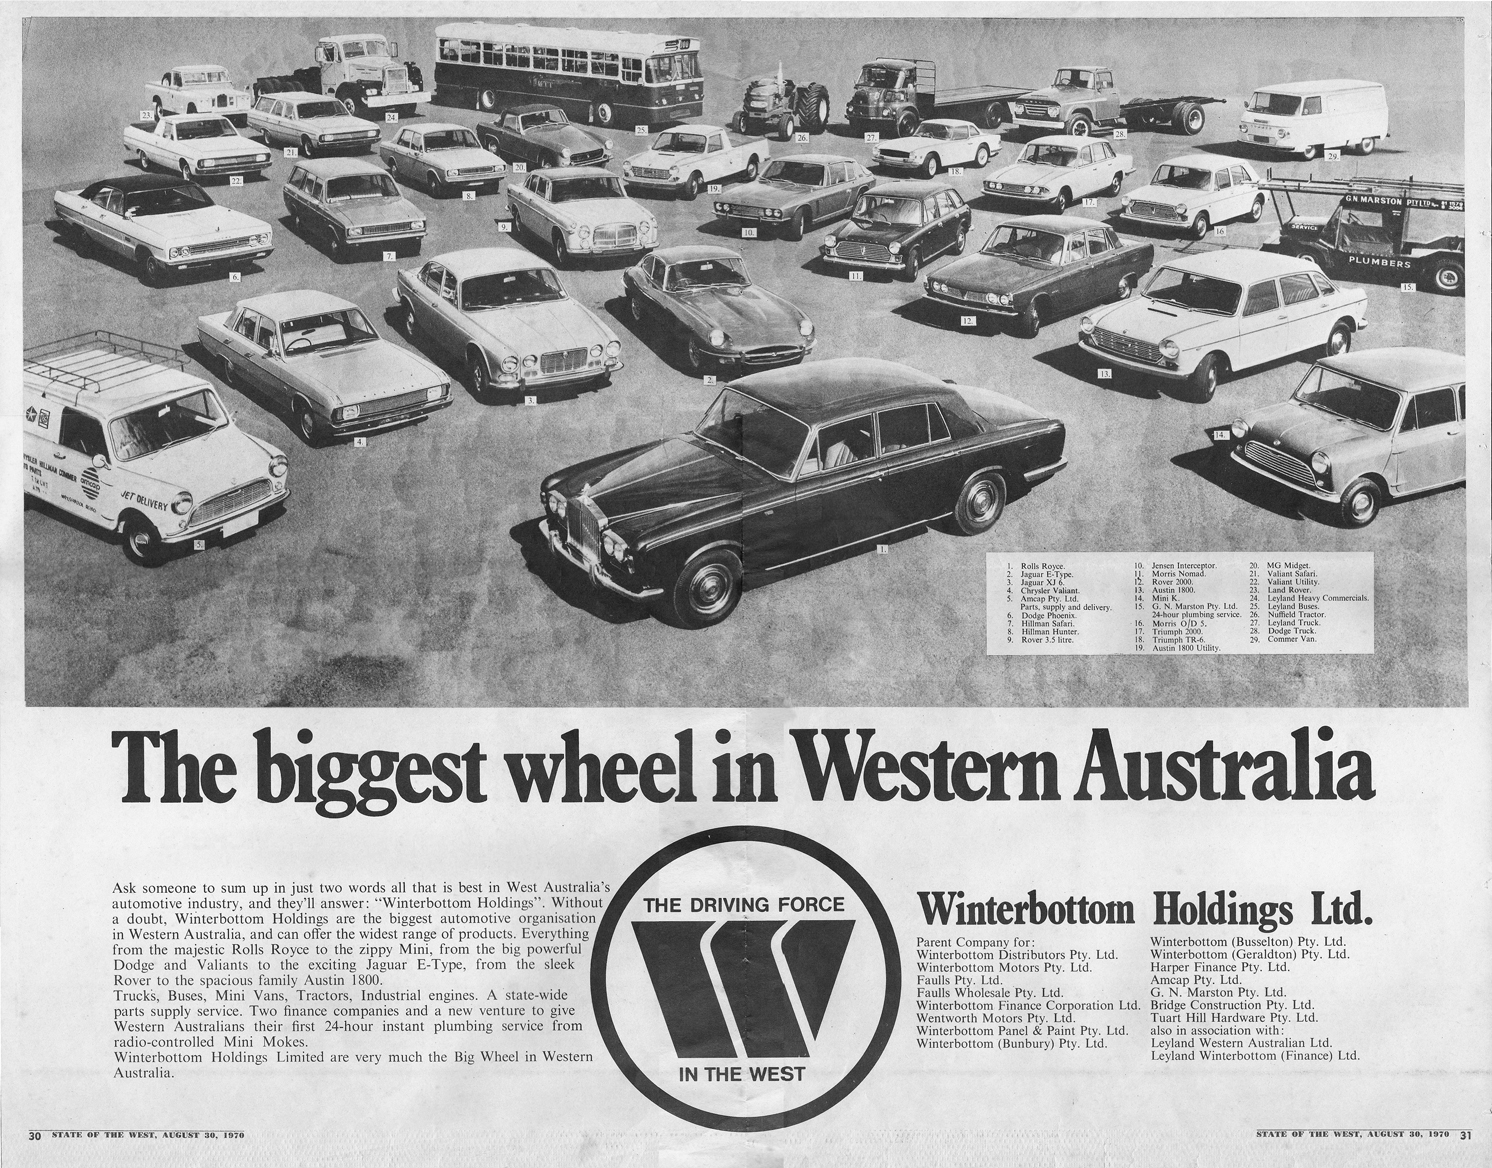 571ab23f78 Large format advertisement which appeared as a centrespread in a supplement  to The West Australian Newspaper